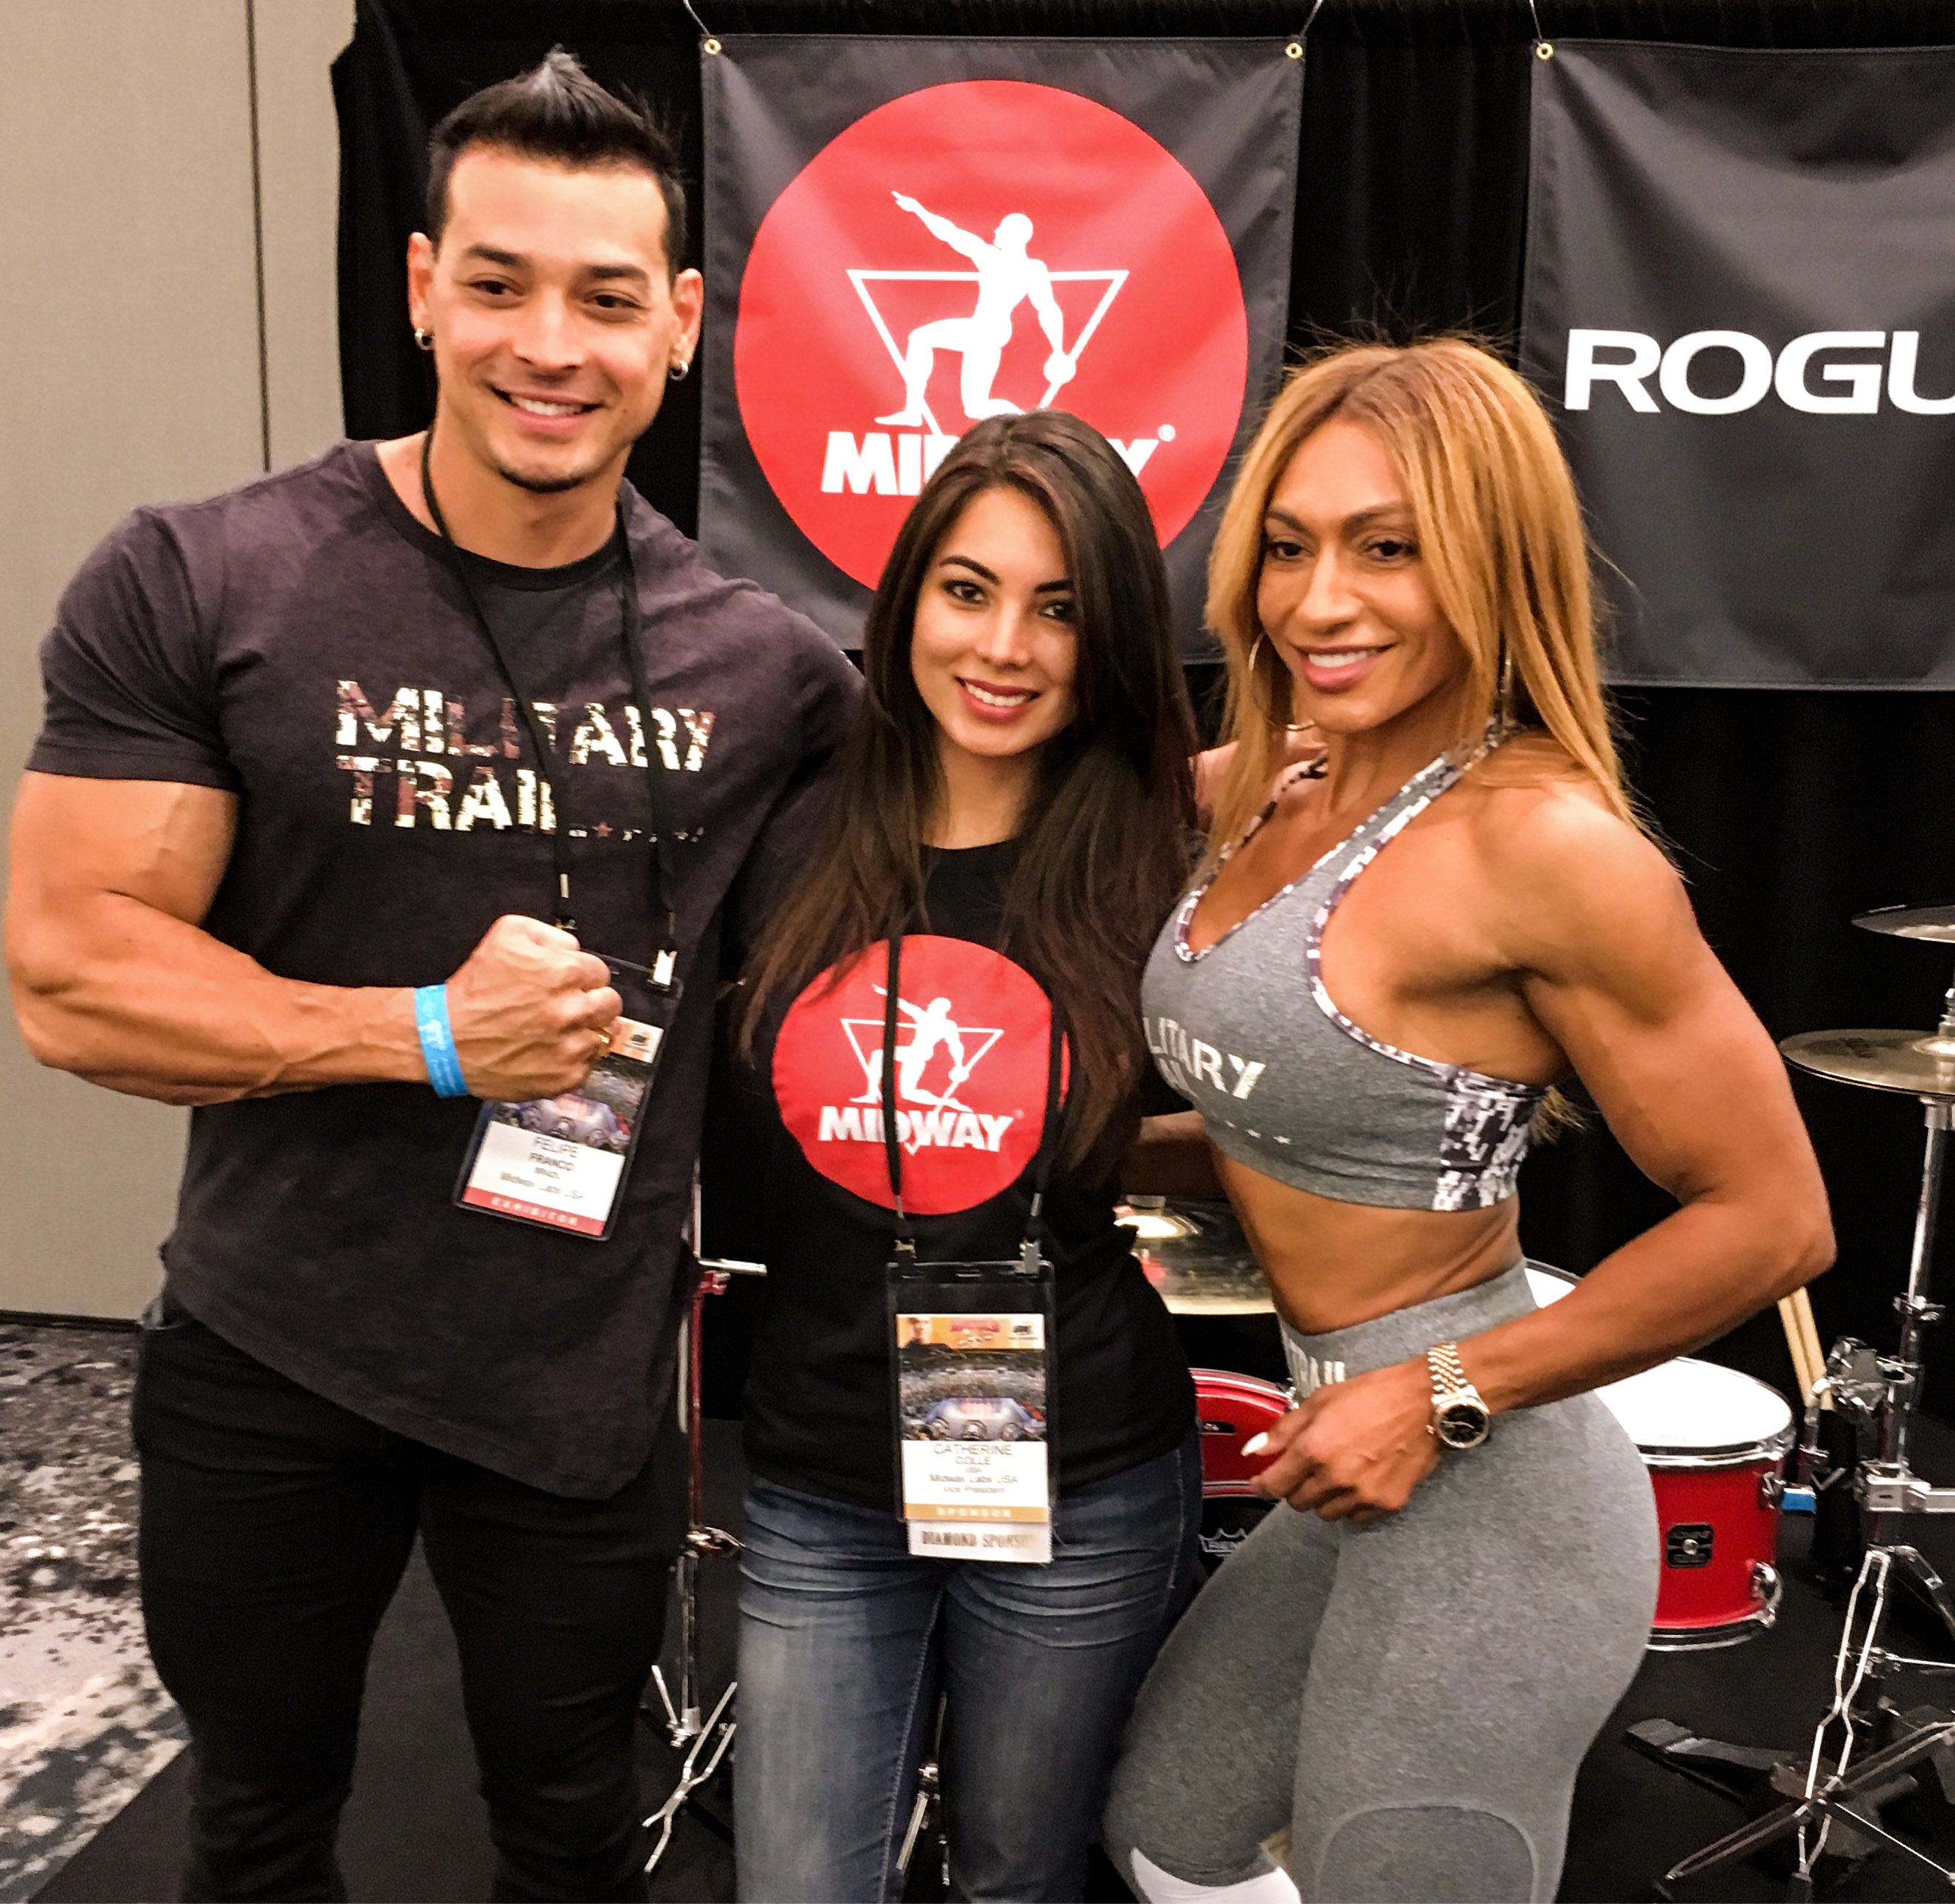 Felipe Franco, Midway Labs VP Catherine Colle and<br /> Karina Nascimento saying hello to the cameras.